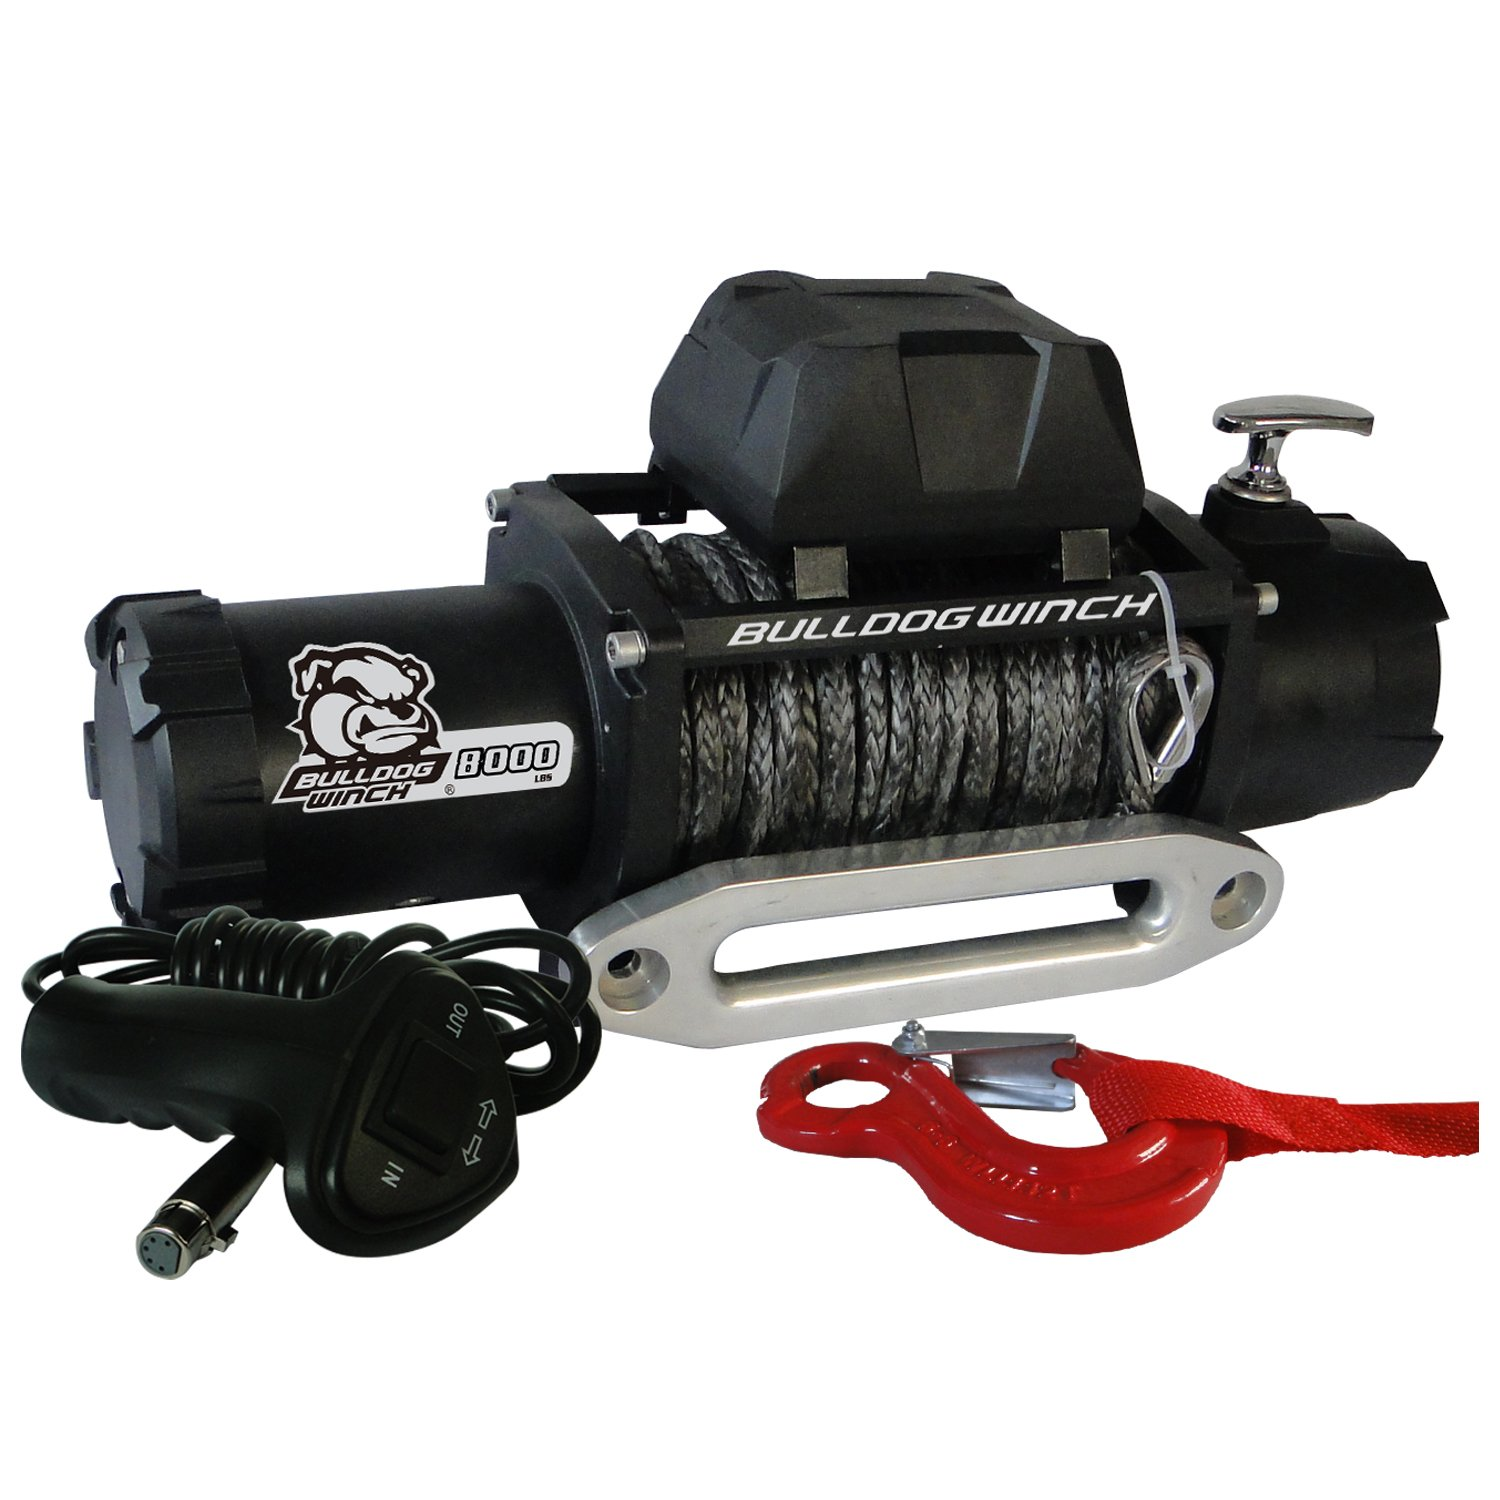 Bulldog Winch 10044 Winch 8000lbwith 5.2hp Series Wound Motor,100ft Synthetic Rope, CNC Billet Aluminum Hawse Fairlead